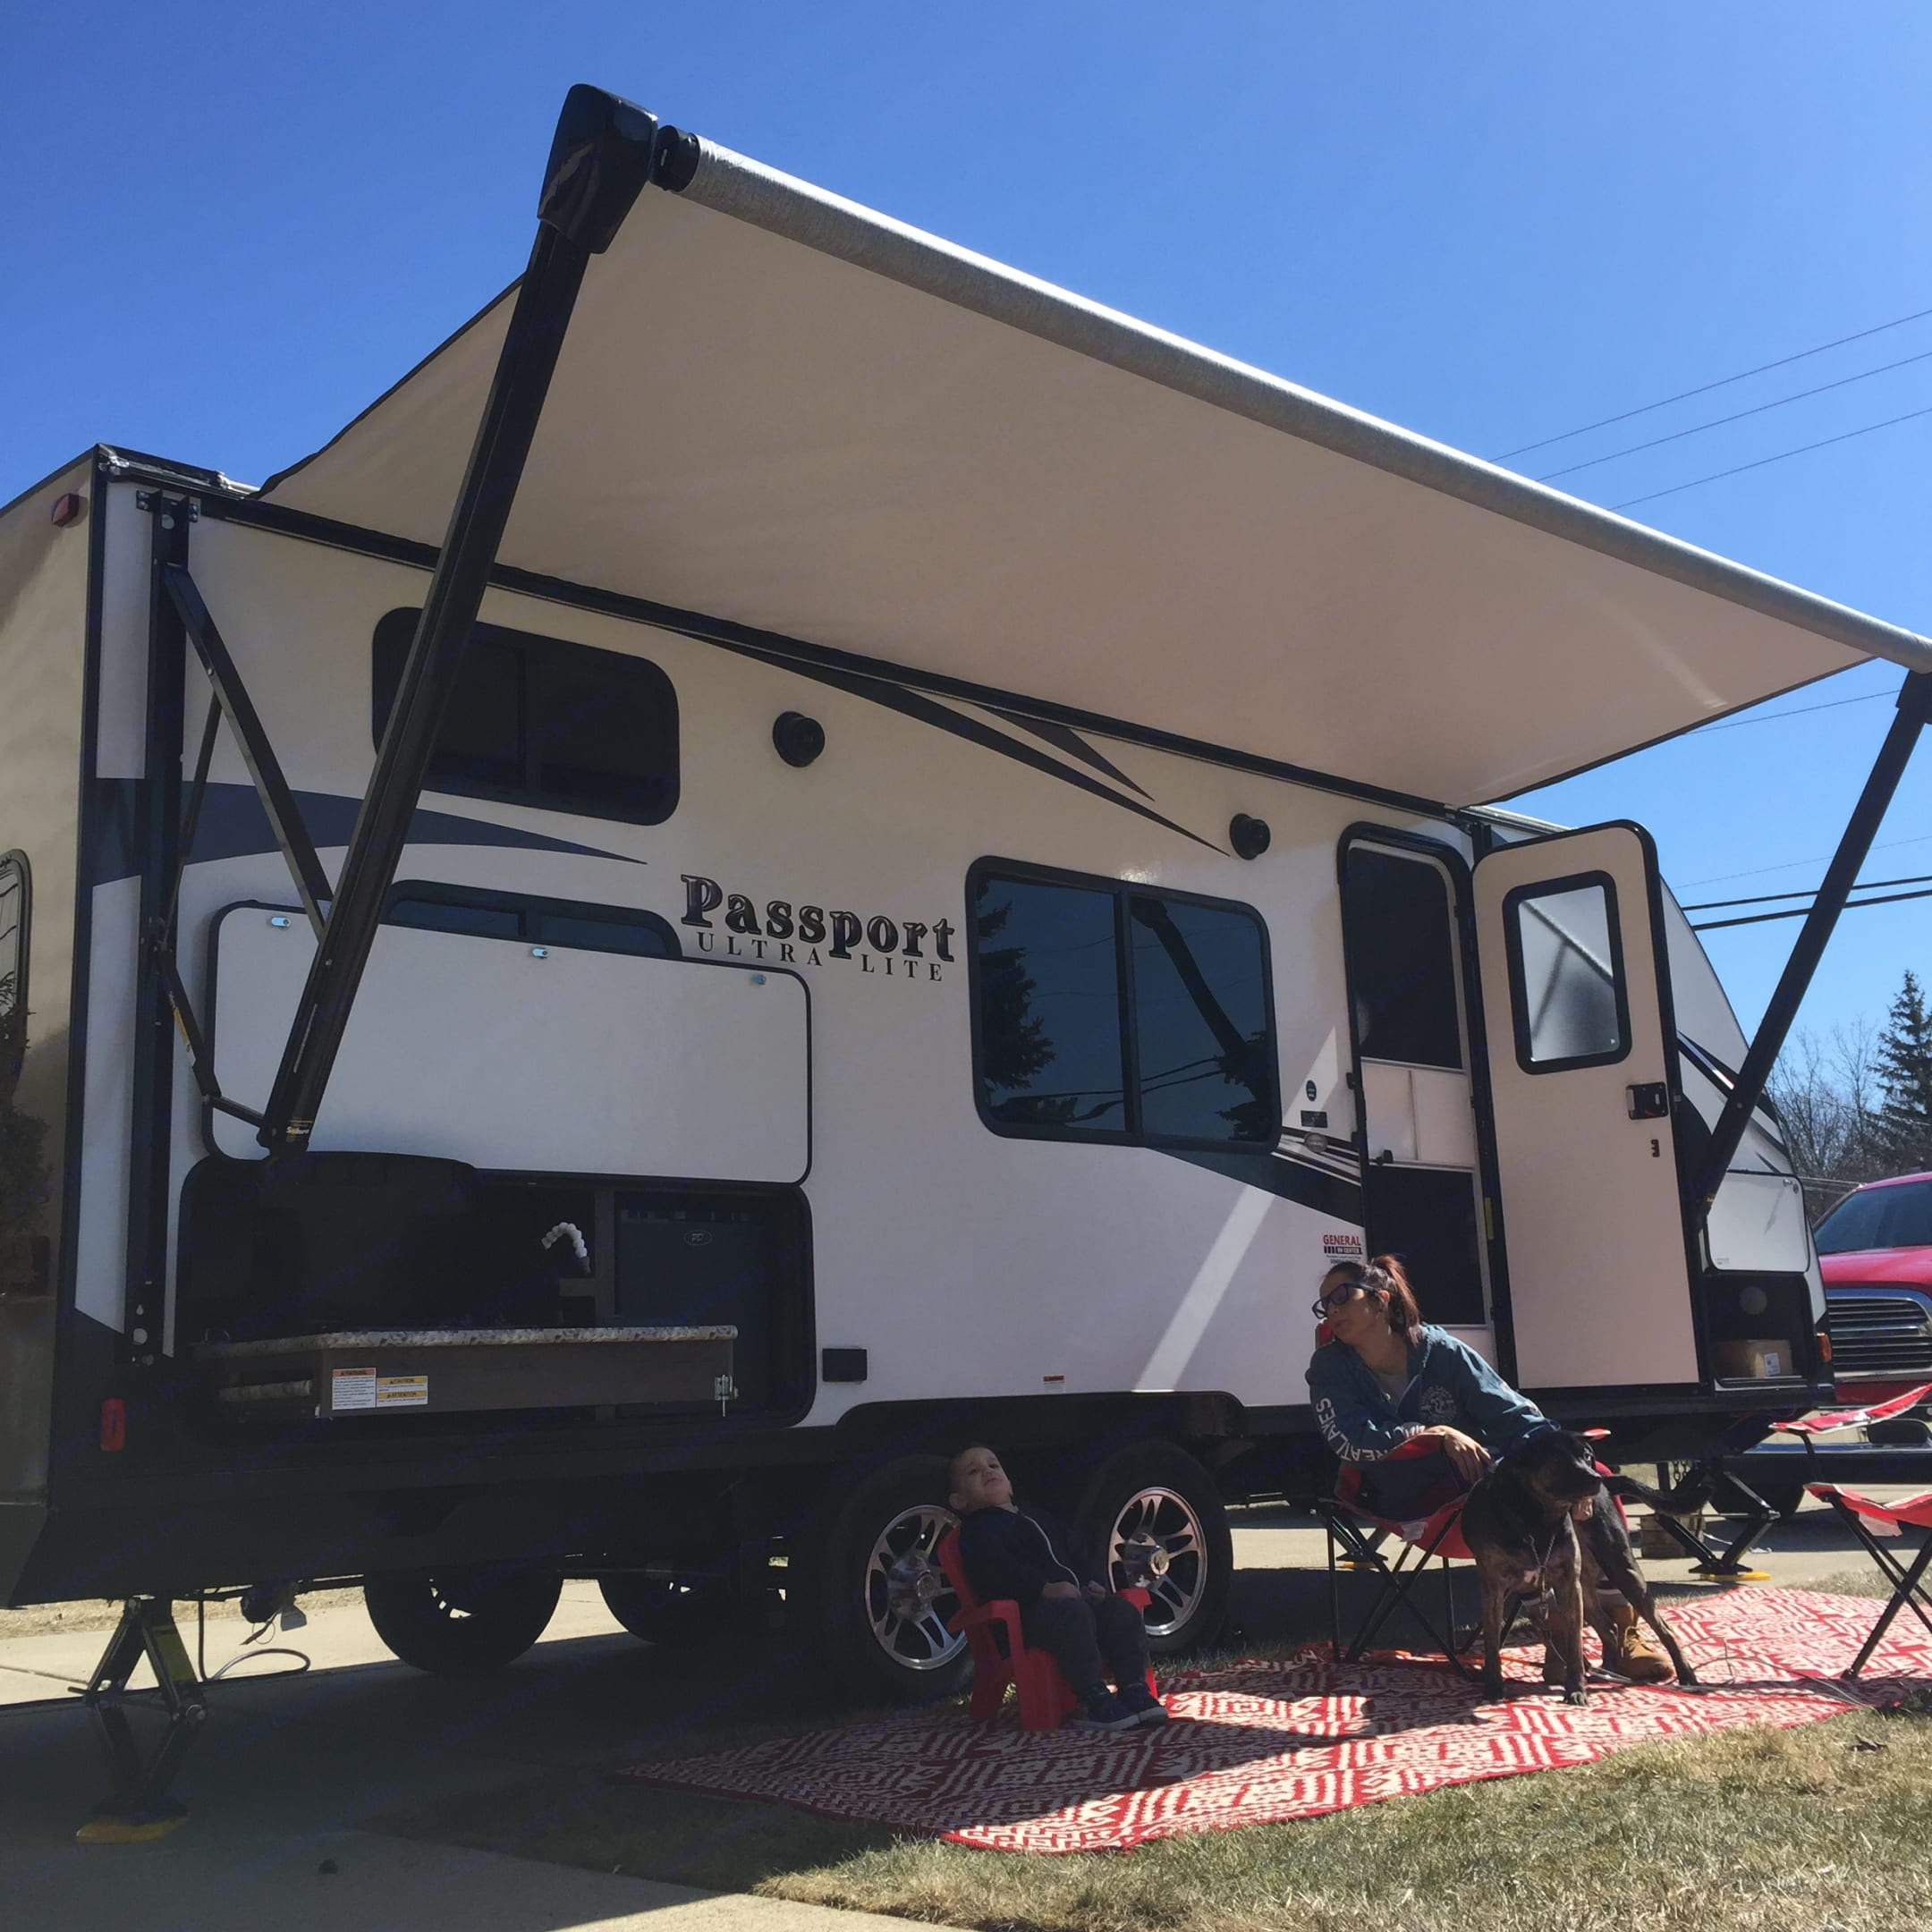 Extend the awning with the push of a button, sit back and relax!  Outdoor rugs, chairs and hammocks are available to enhance your camping experience.. Keystone Passport 2018